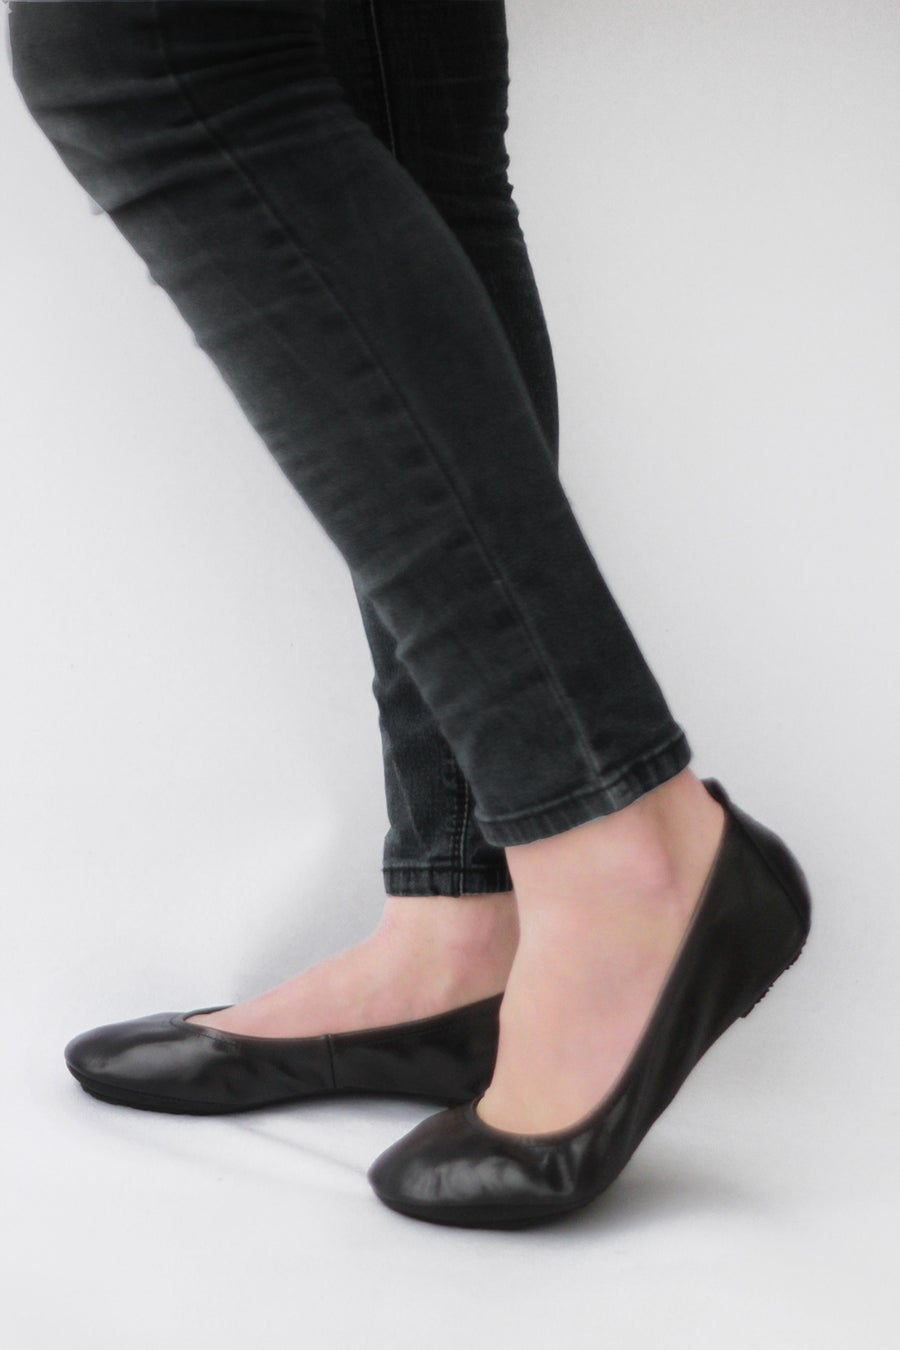 Image of Ballet flats Foldable - Simply Me in Lustrous Black